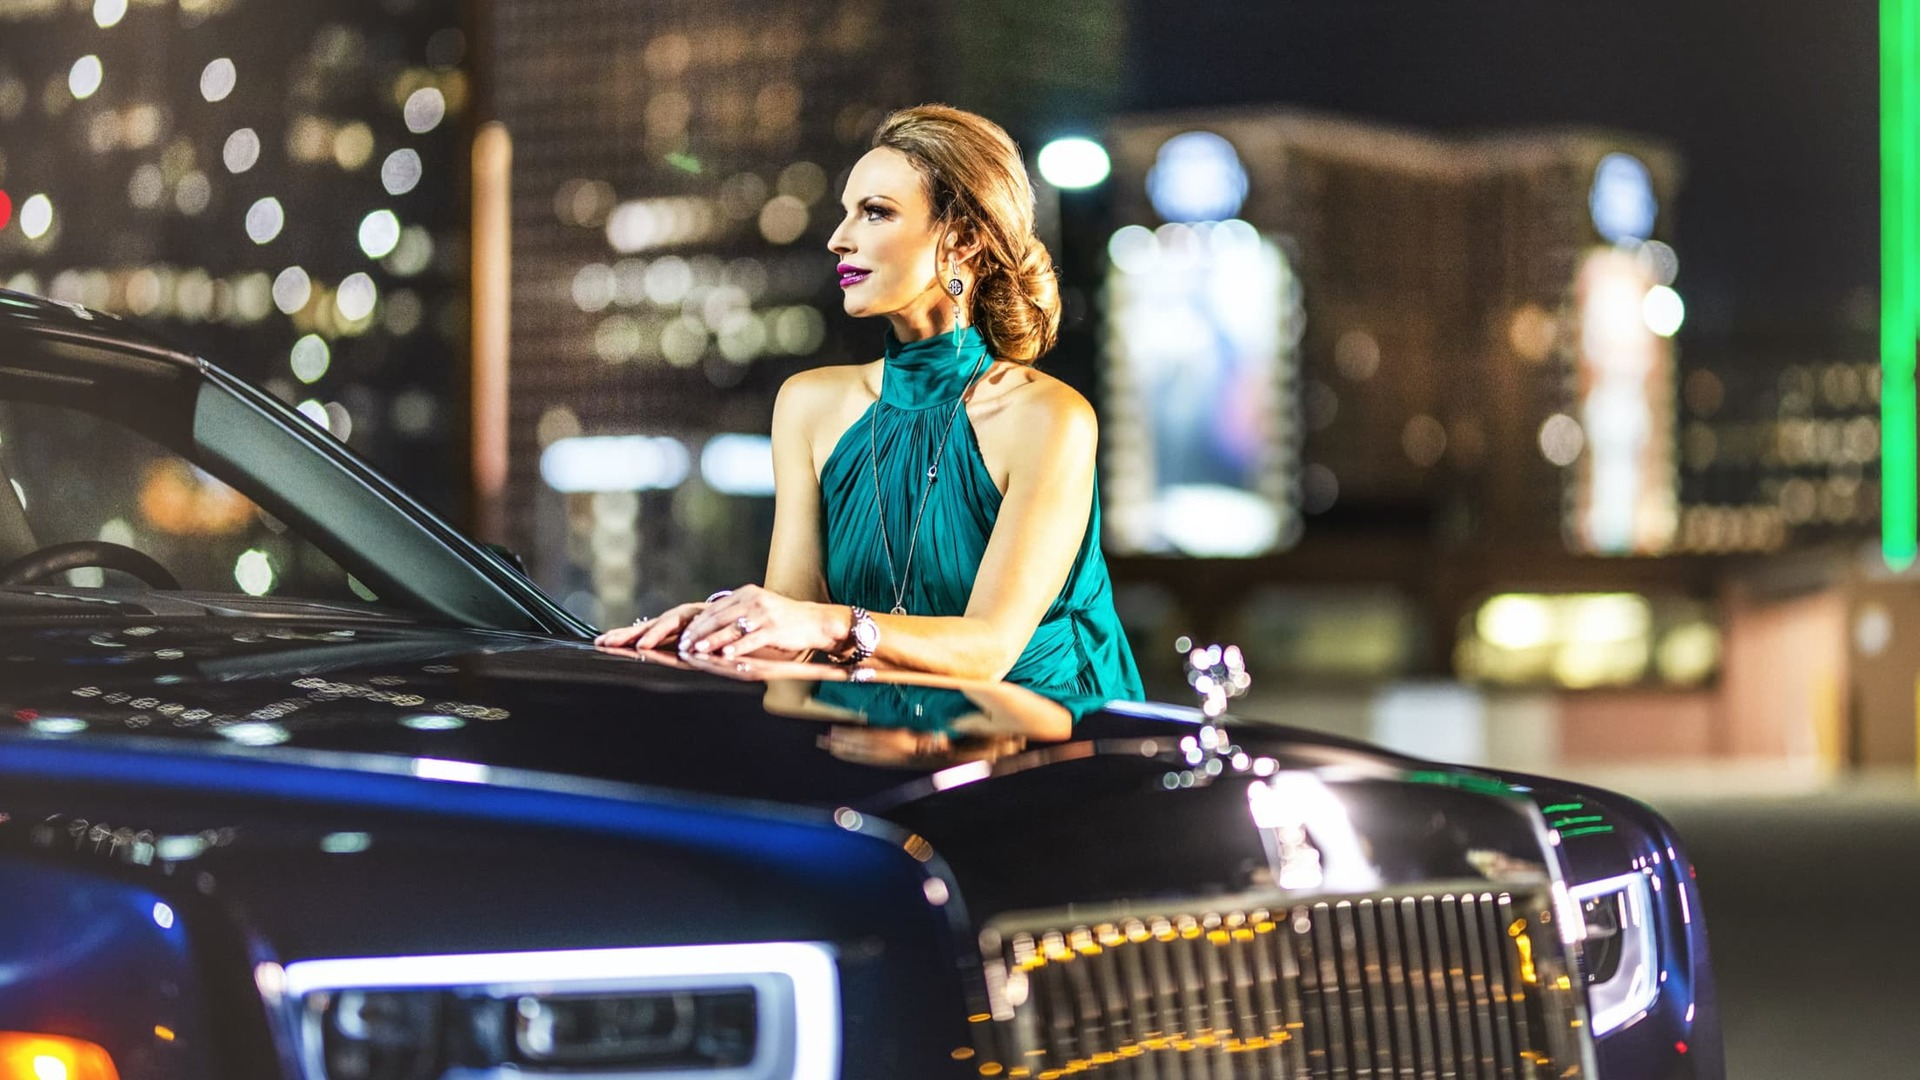 a night shot of Melissa Muller leaning against her dark blue Rolls-Royce Phantom with a cityscape in the background